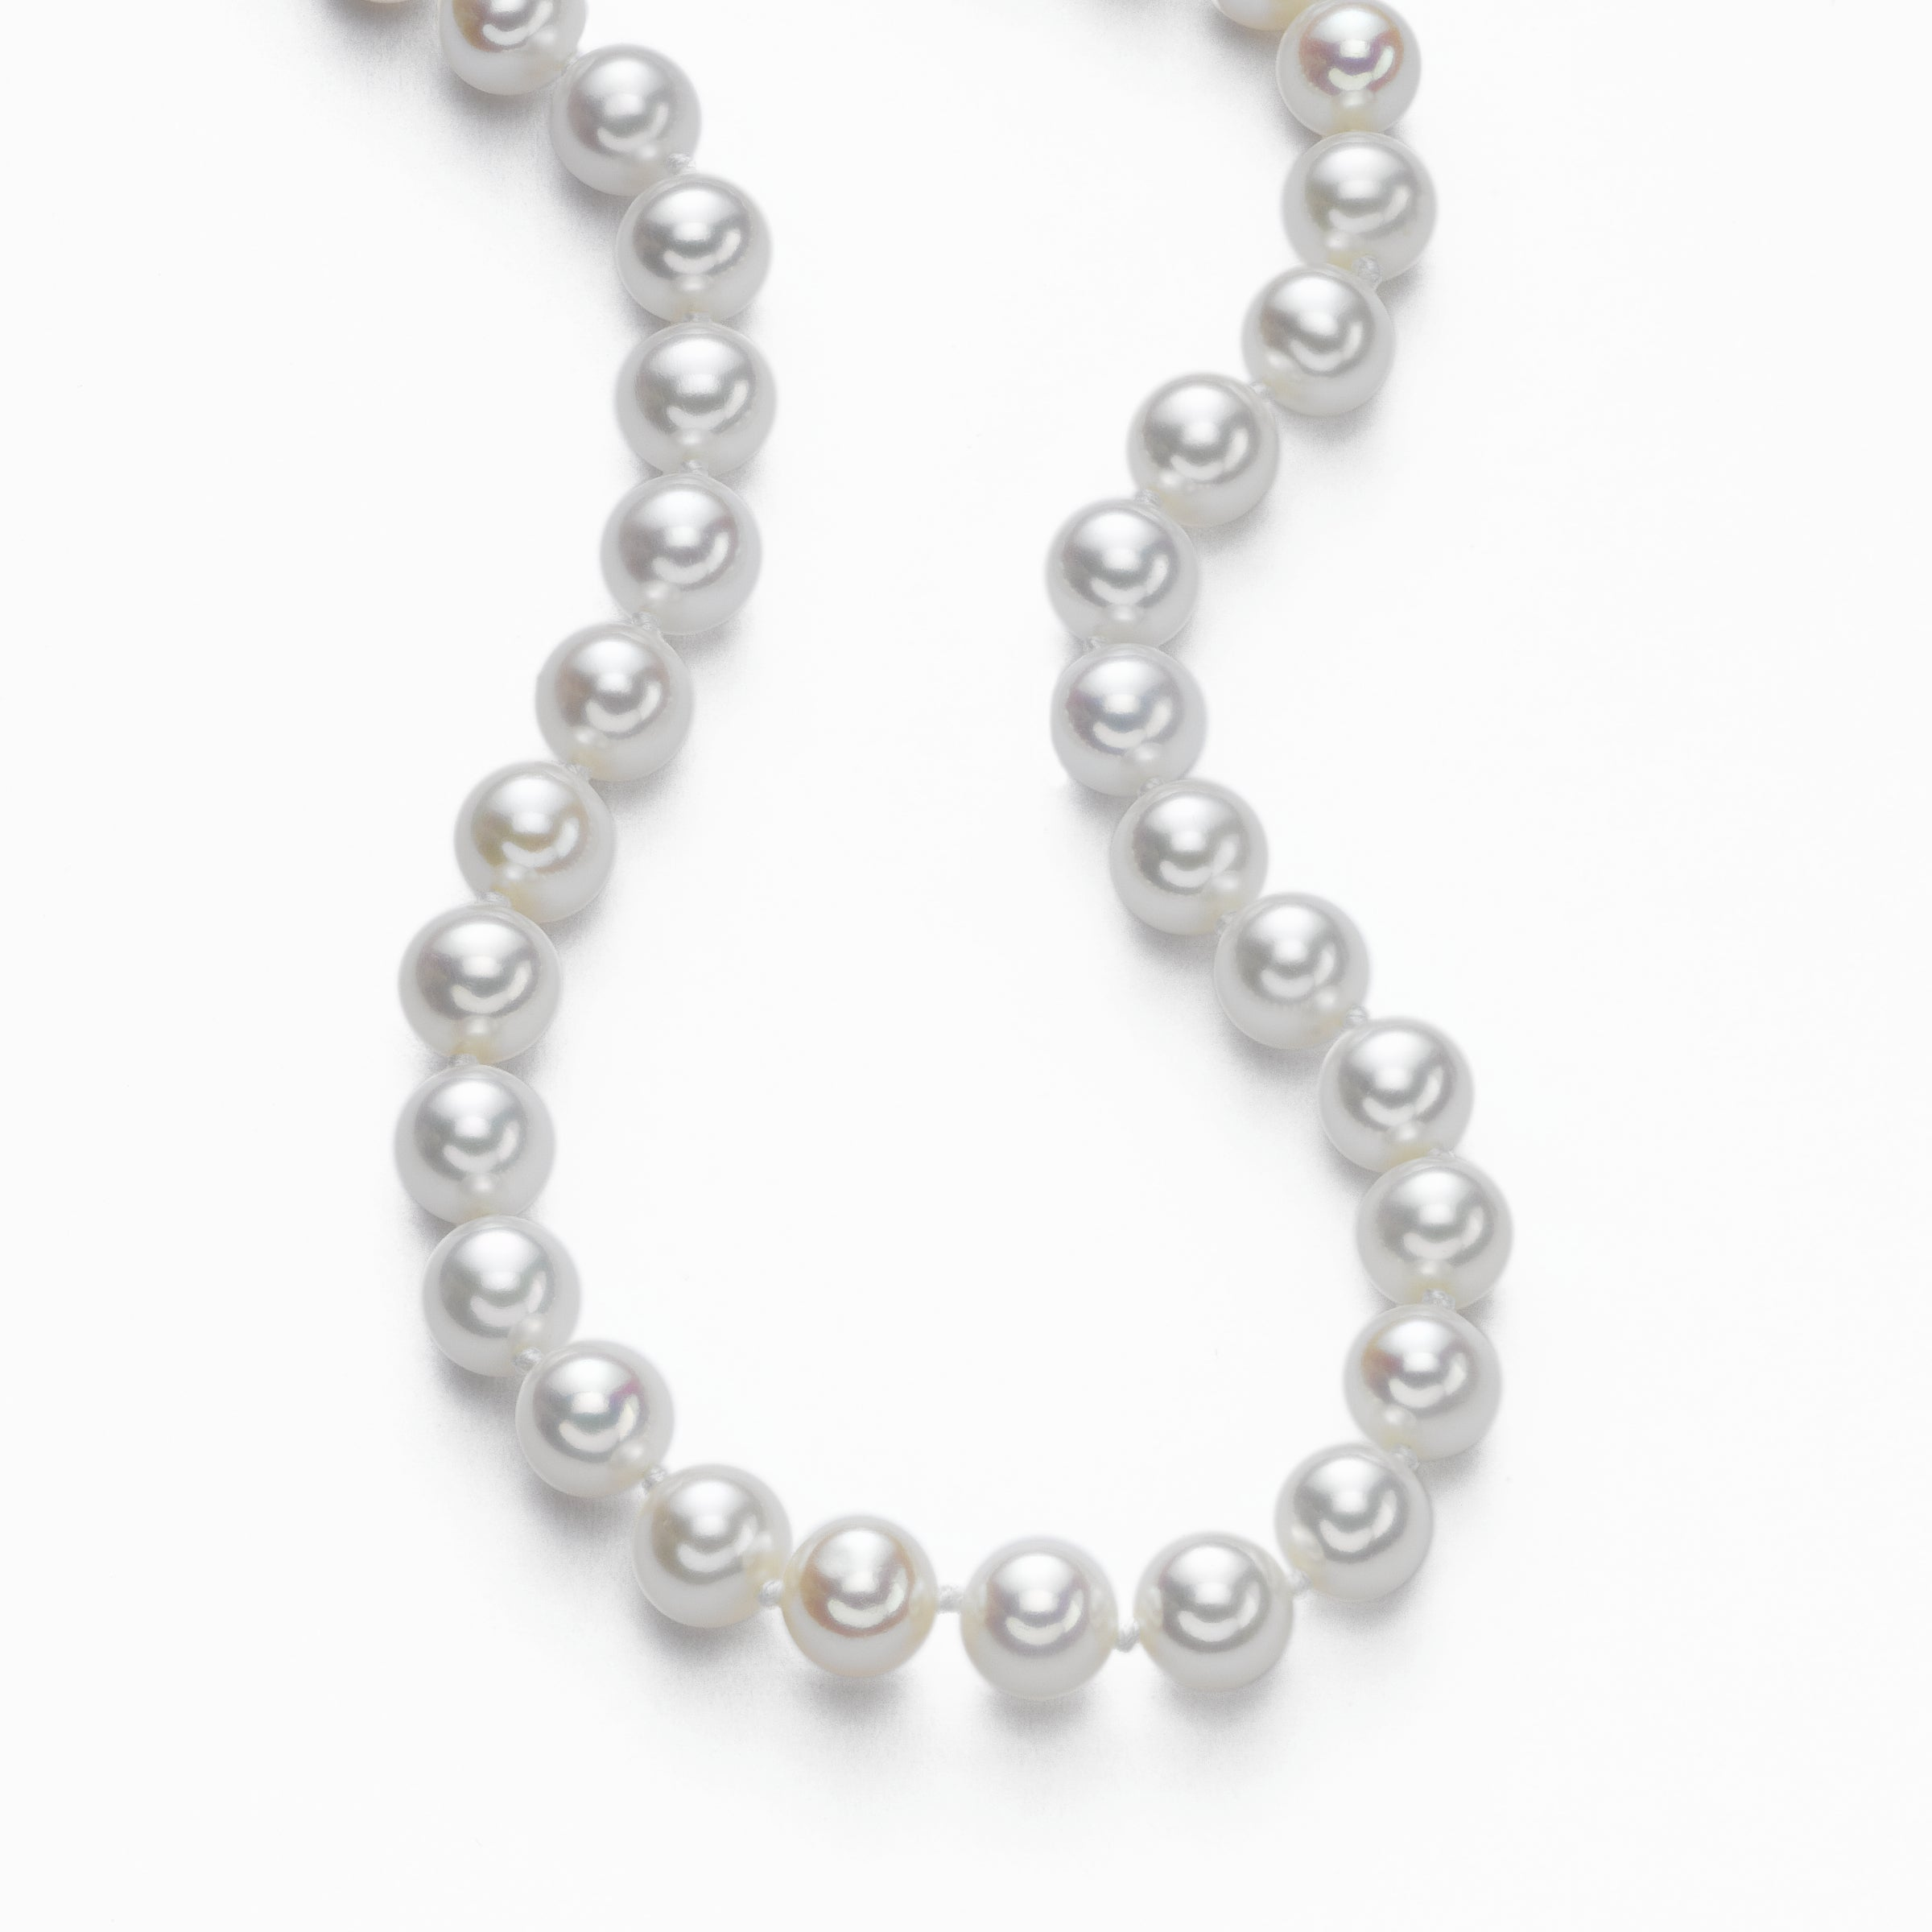 Freshwater Cultured Pearls, 6.5 x 6 MM, 16 or 18 inches, 14K